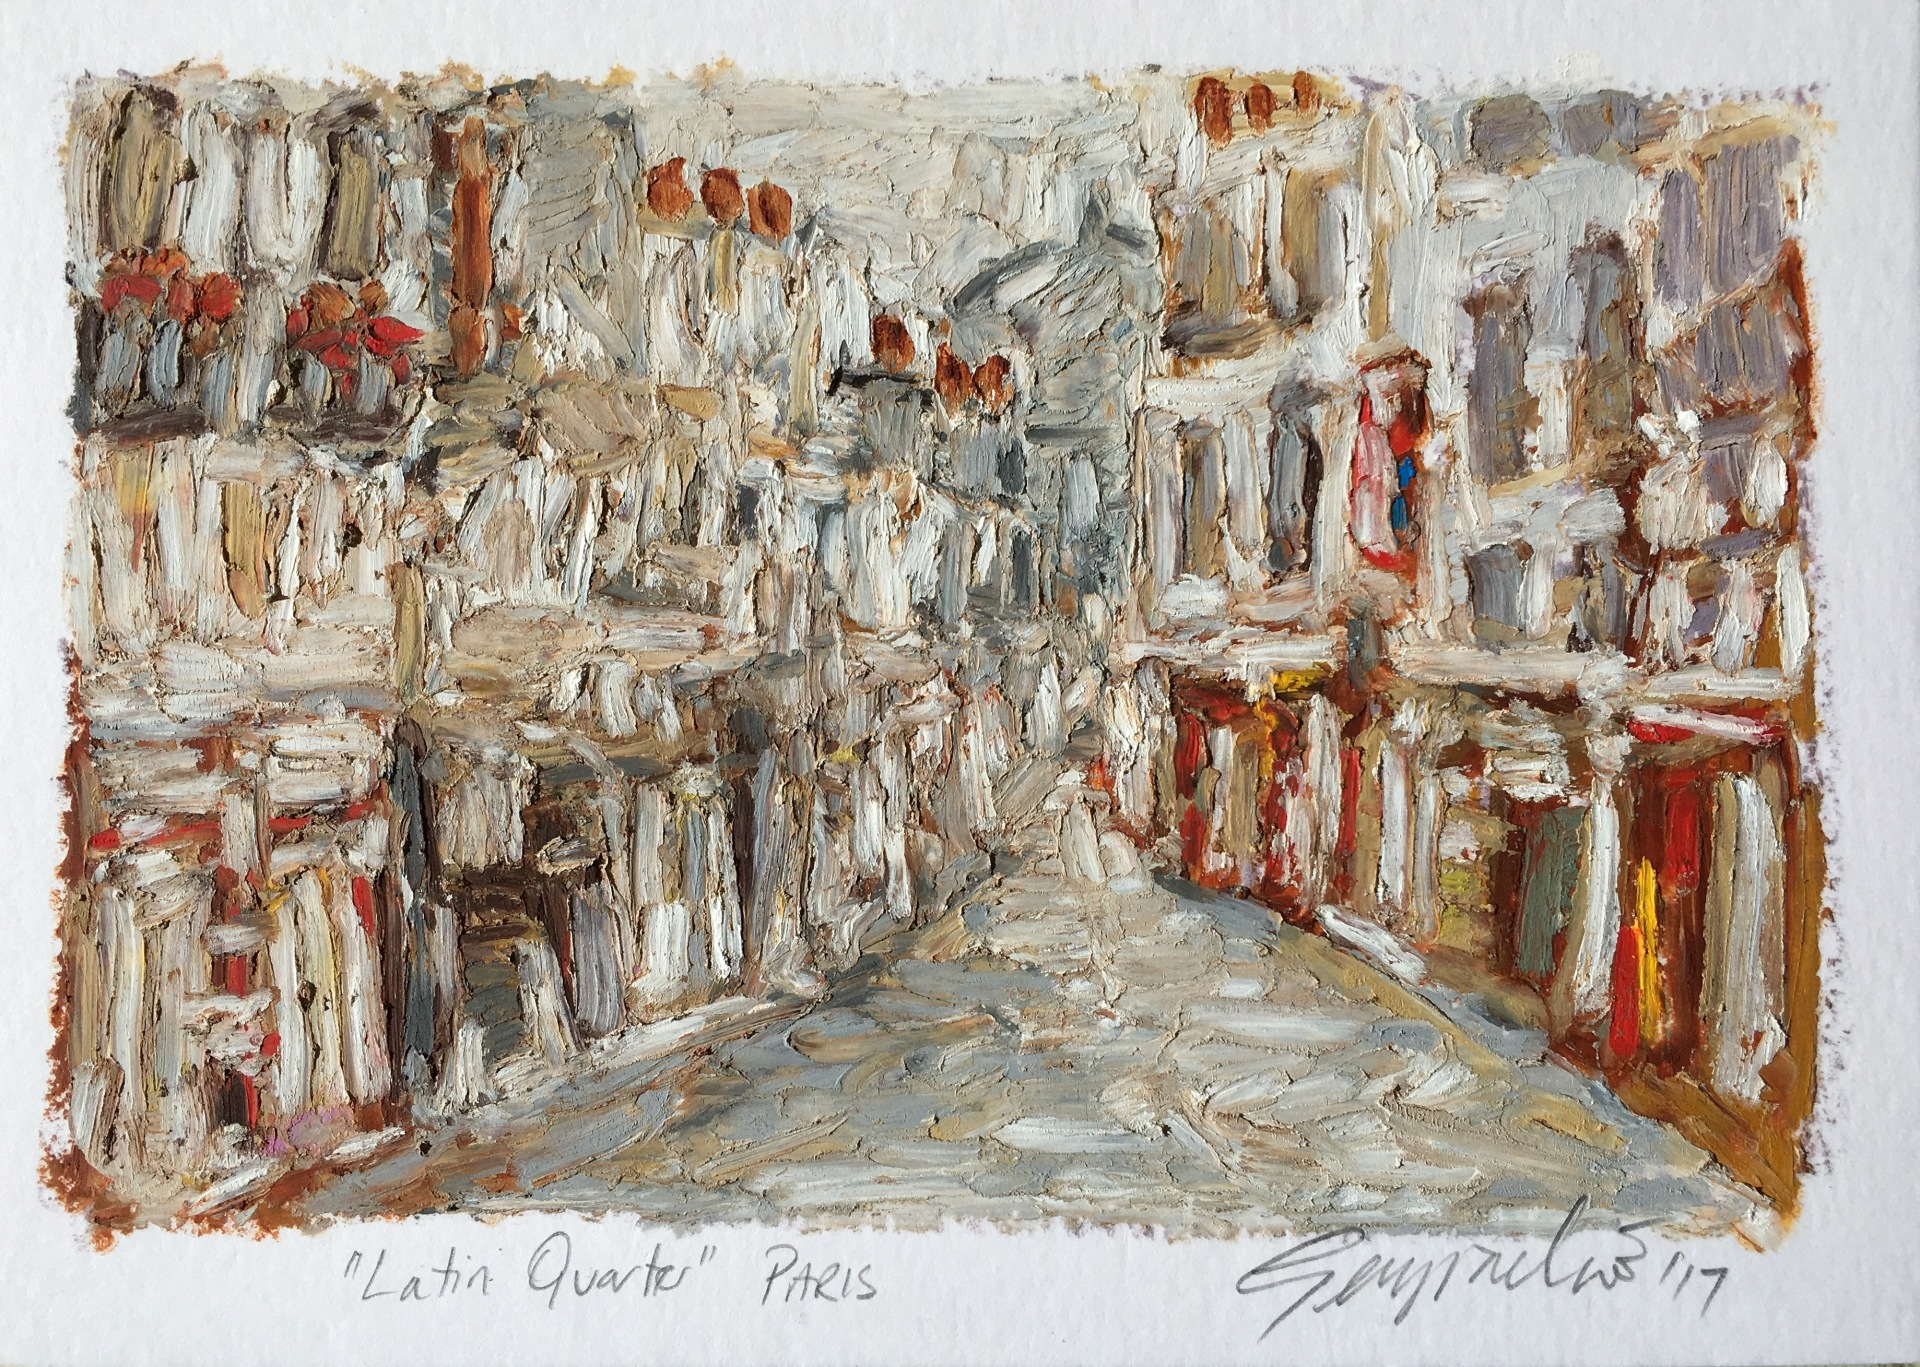 Latin Quarter Paris (SOLD)